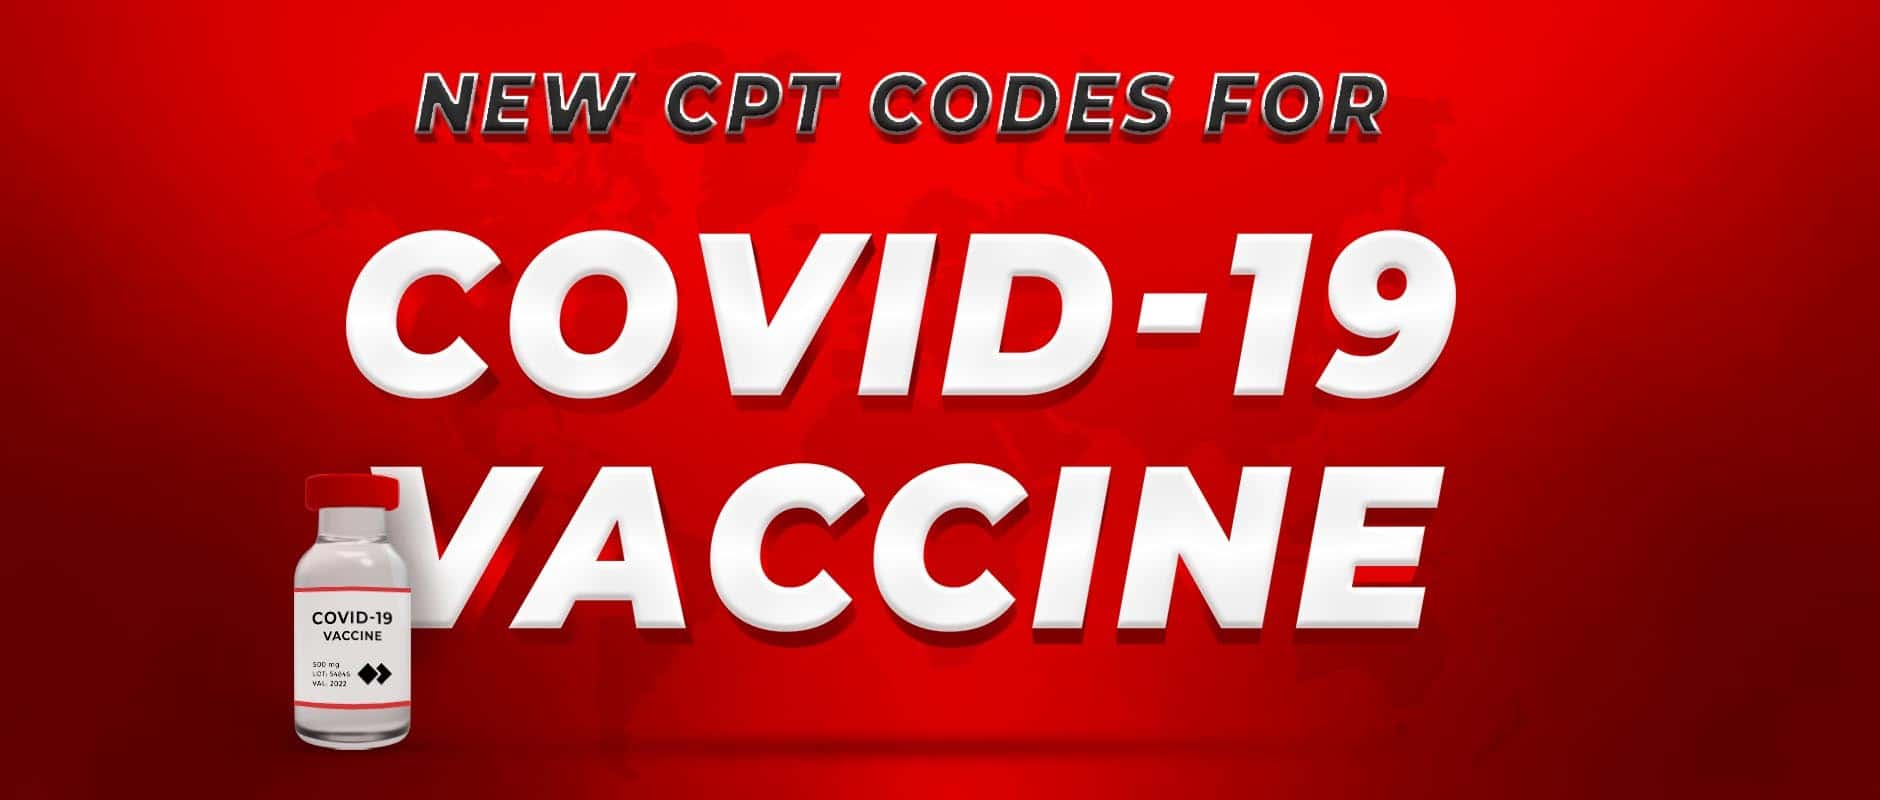 New CPT Codes For COVID-19 Vaccine